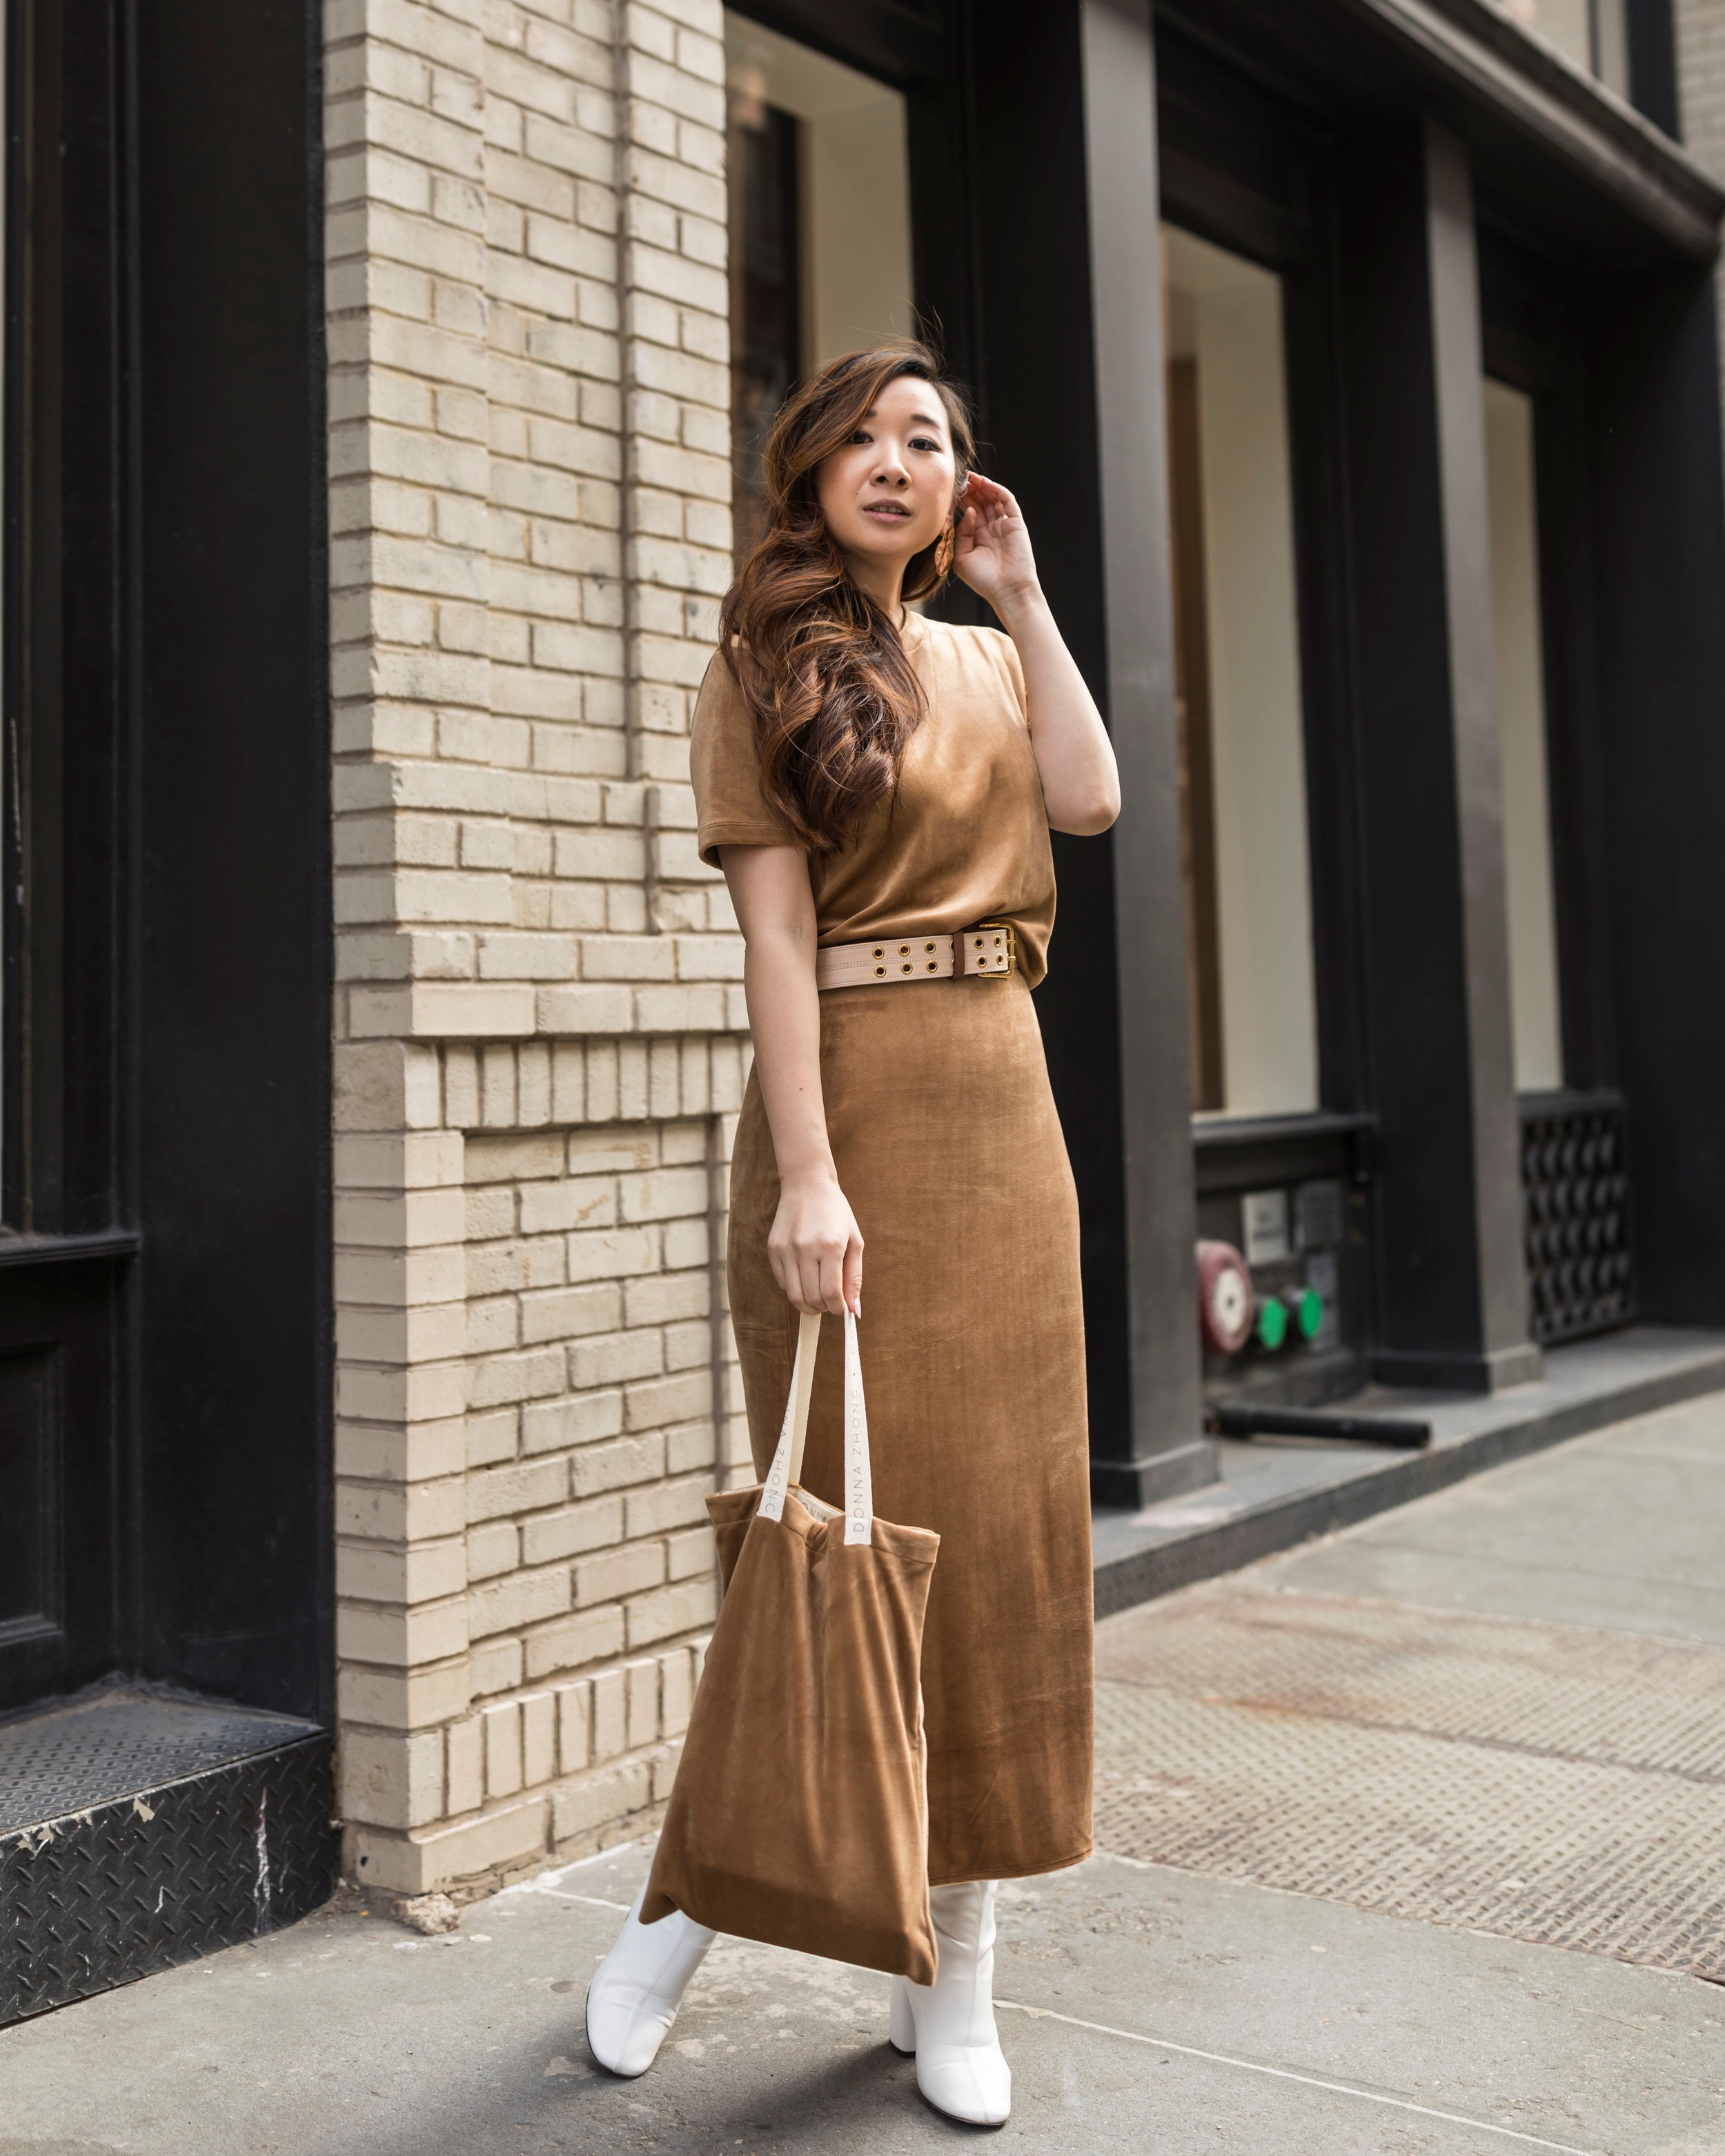 Our #bosslady Tricia Chen,  @happilyeverstyle , wearing a Donna Zhong Official matching  camel top  and  skirt  while holding one of the velvet goodies bags made by Donna!